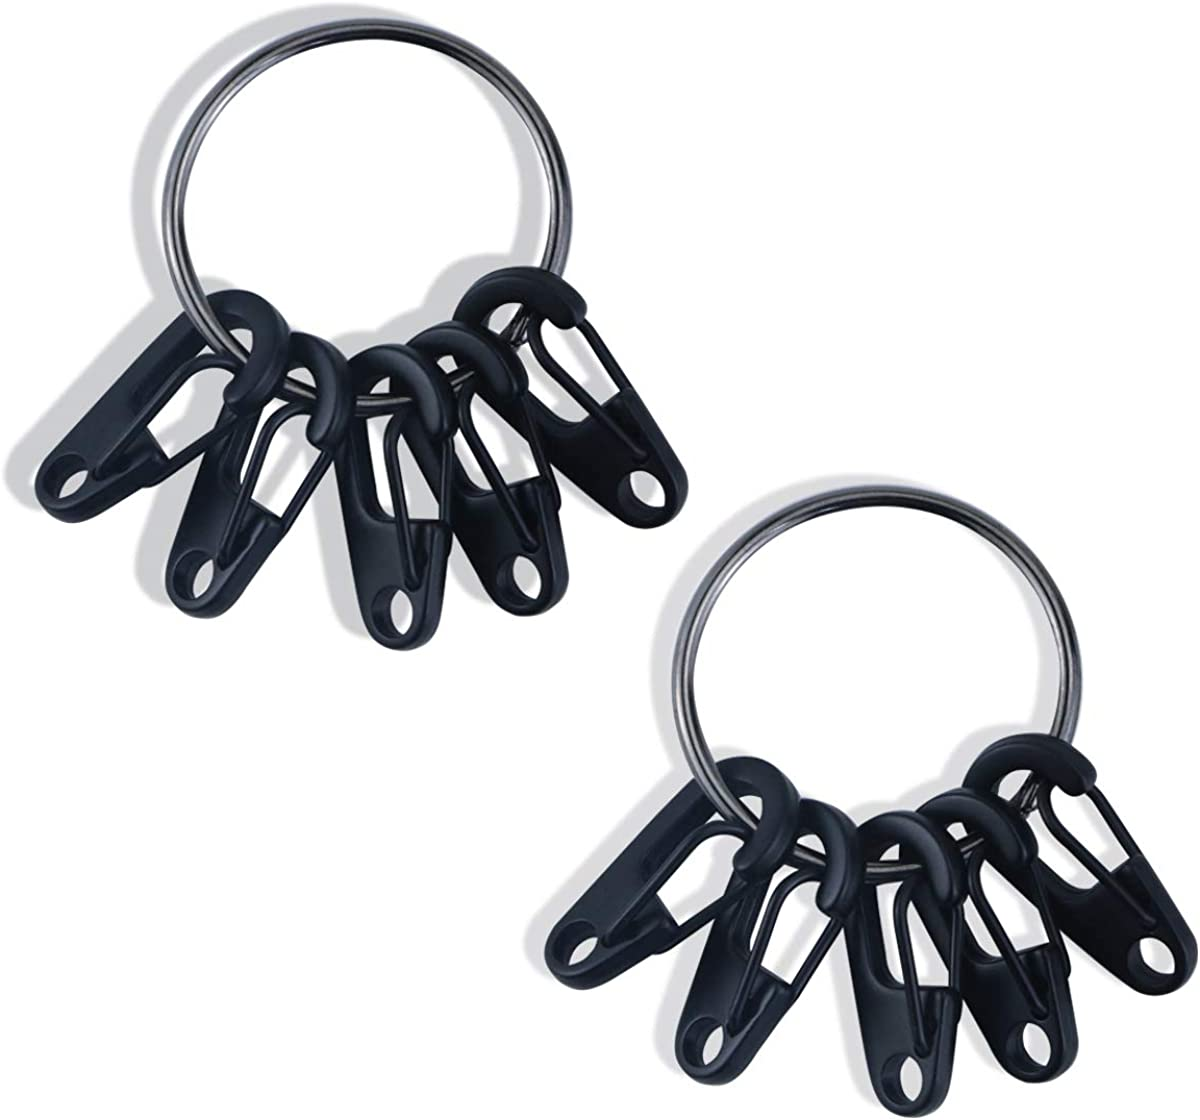 YG_Oline 2 Sets Mini Alloy Black Carabiner Keychain Clip with Key Ring, Tiny Spring Hook Snap for Backpack, Bottle, Camping, Car Key, Dog Tag Using Keychains Accessories